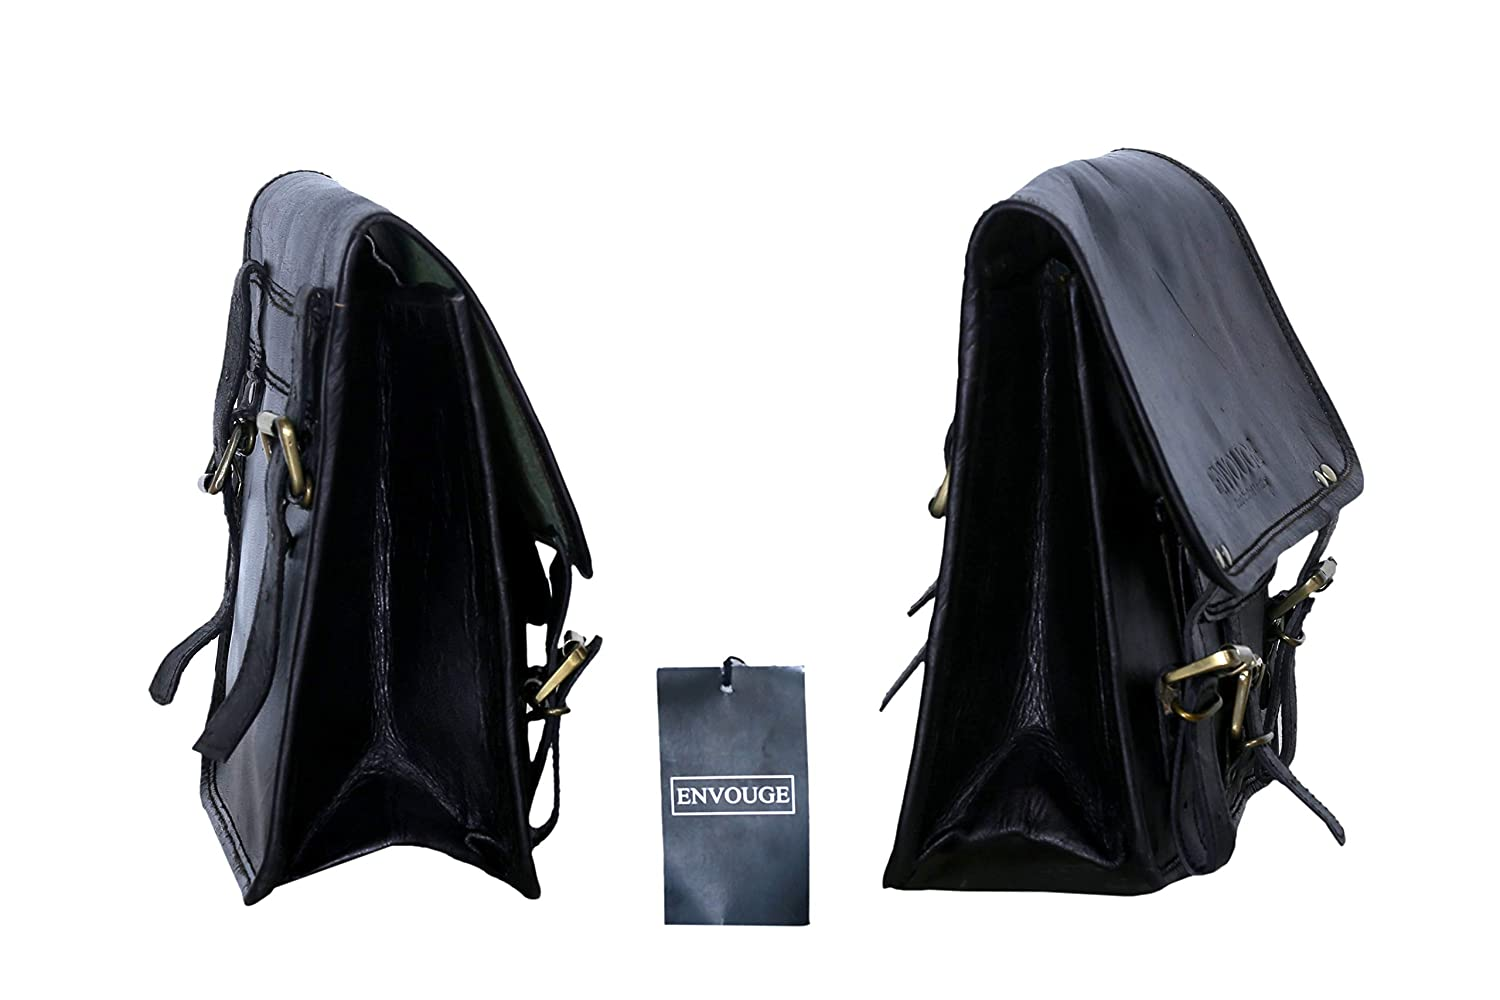 Large Capacity Saddlebags for Bike Scooter Honda Suzuki Yamaha HD Street Sportster Side Pouch panniers 2 Bags ENVOUGE INDIA Saddle Bags for Motorcycles Leather Panniers Black Bag